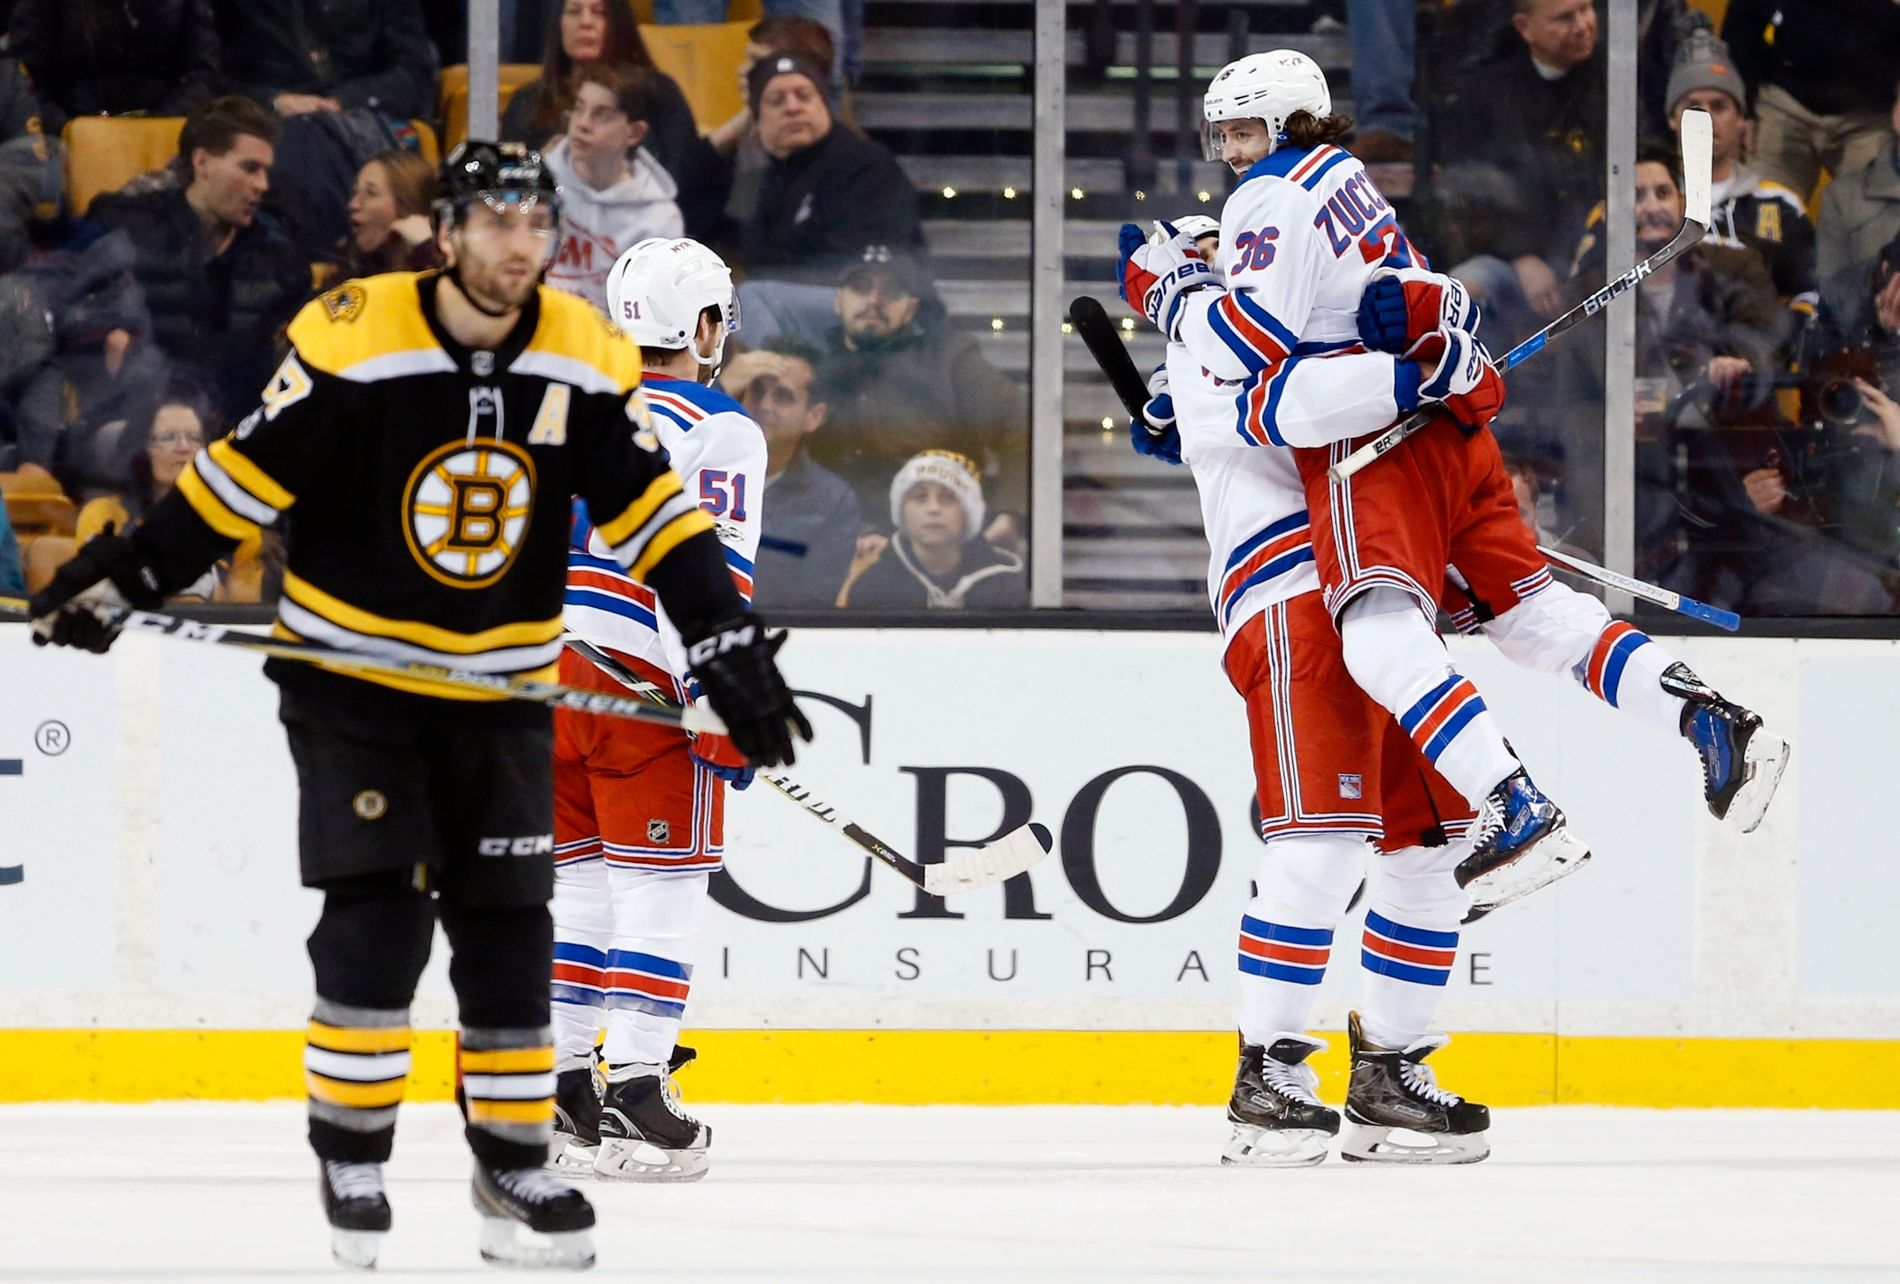 Mats Zuccarello jubler for scoringen på overtid mot Boston Bruins.